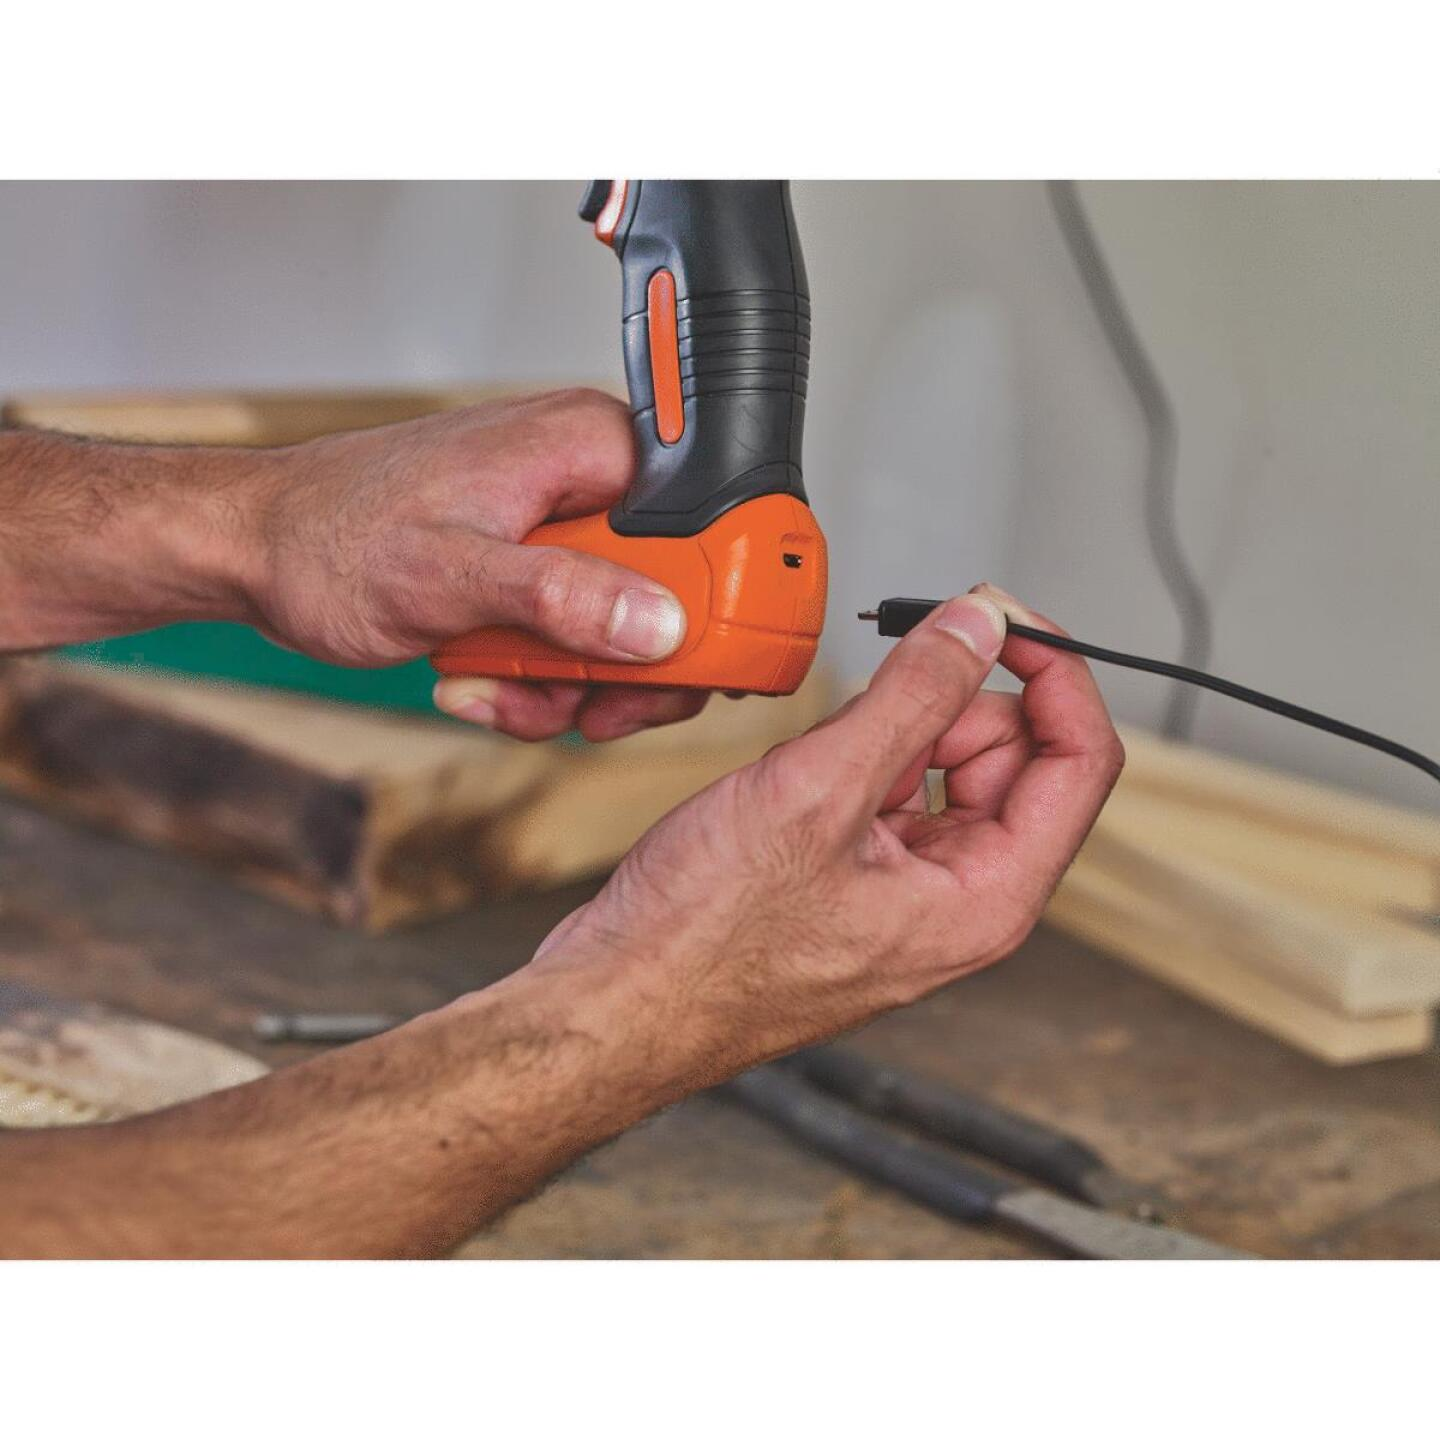 Black & Decker 8 Volt Lithium-Ion 3/8 In. Cordless Drill Kit Image 7